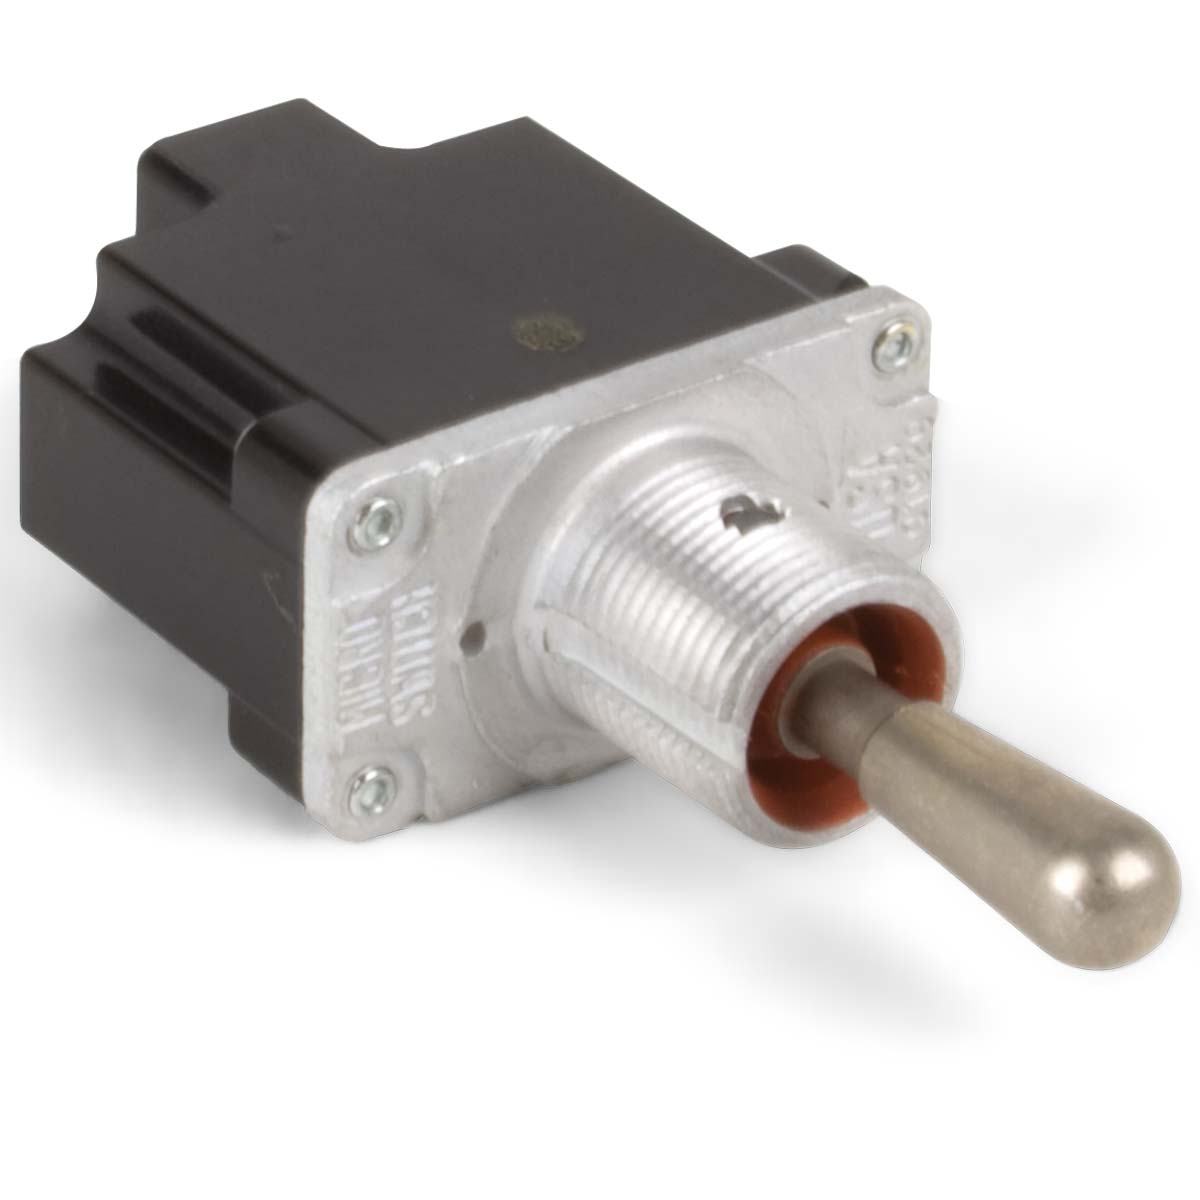 Spdt 3 Position Momentary On Off Heavy Duty Single Toggle Switches Specialty Circuit Dpdt Switch Pole Environmentally Sealed